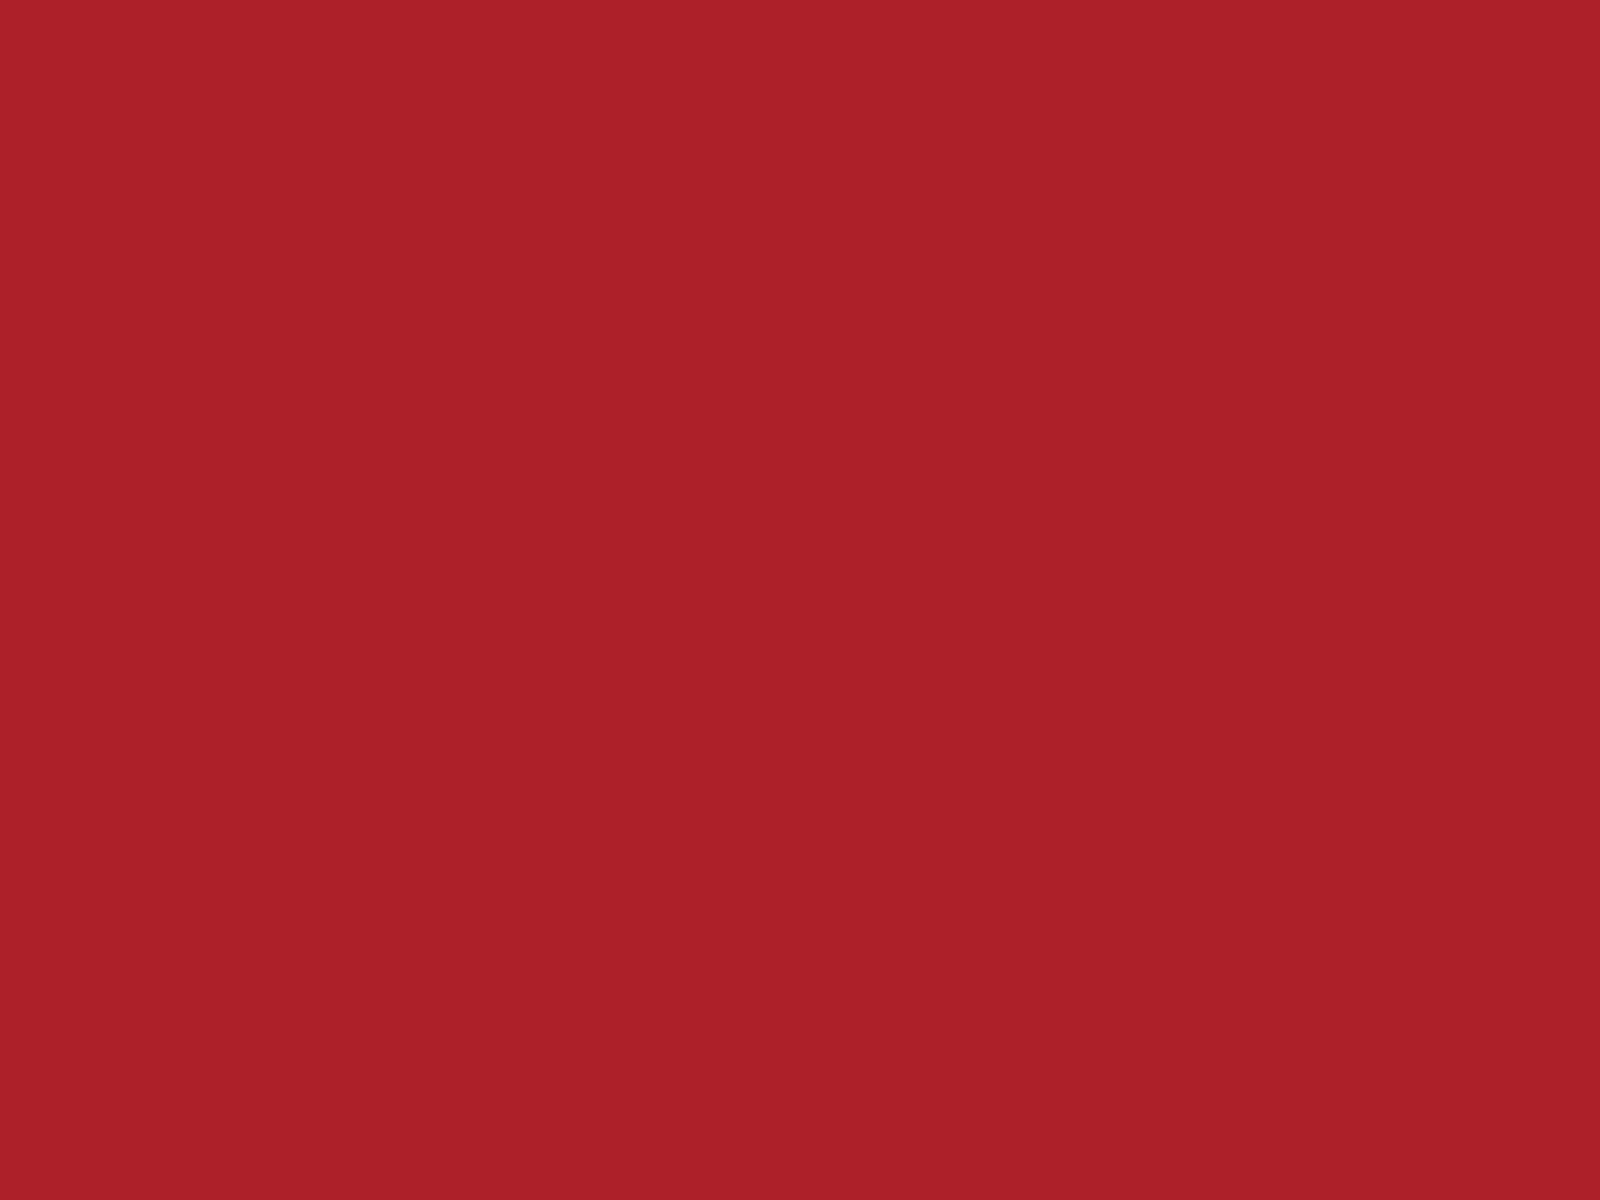 1600x1200 Upsdell Red Solid Color Background